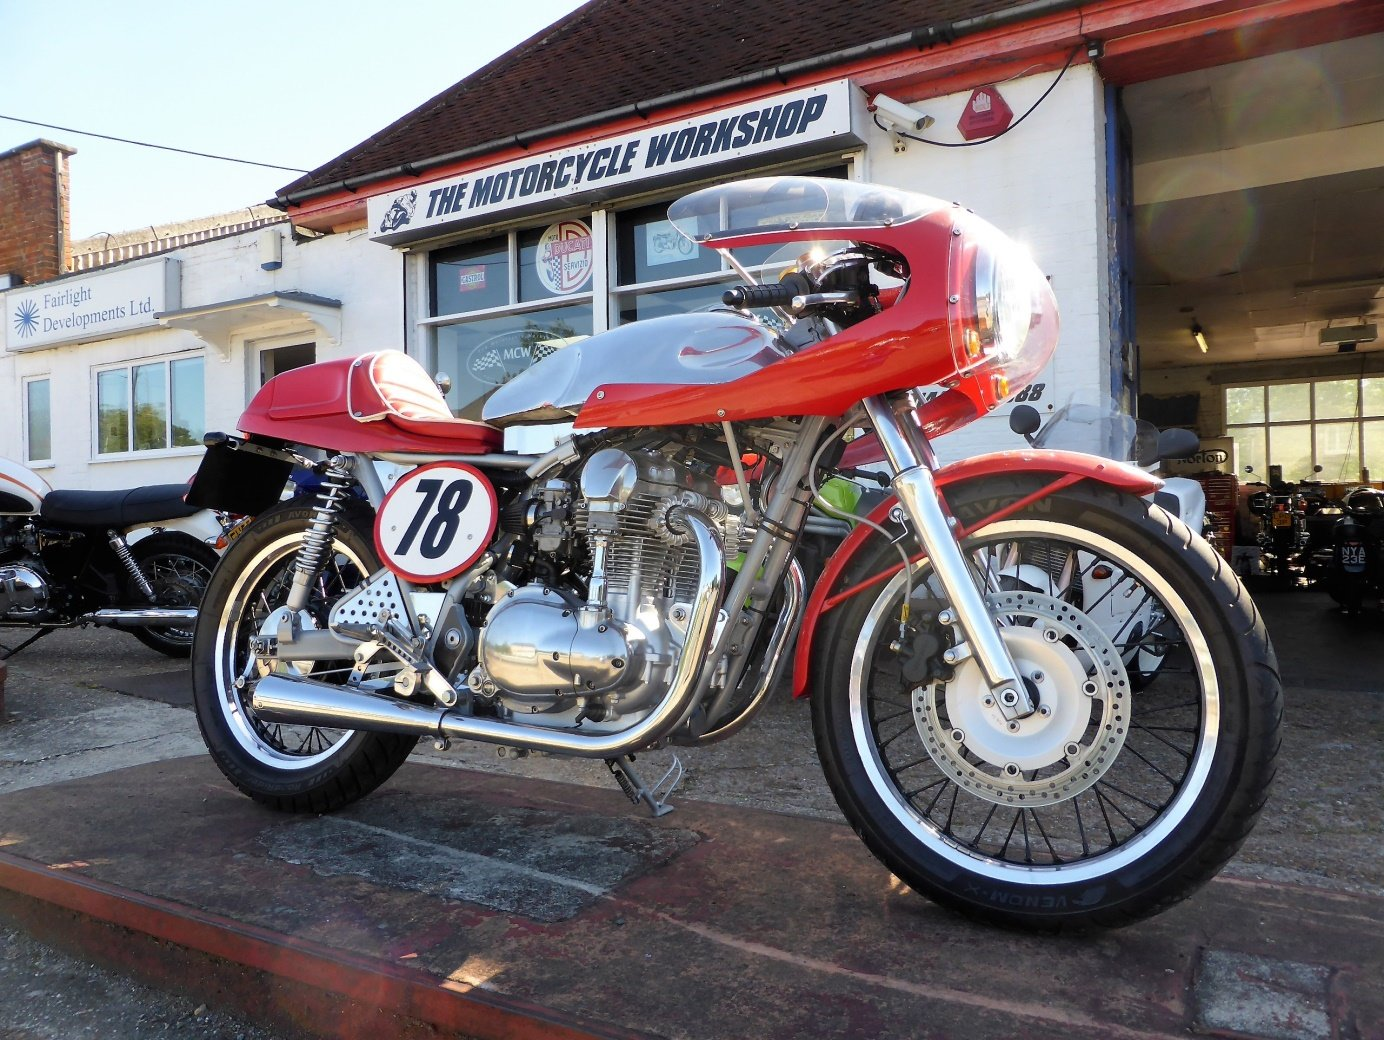 2002 KAWASAKI W650 'Cafe Racer' For Sale (picture 3 of 3)